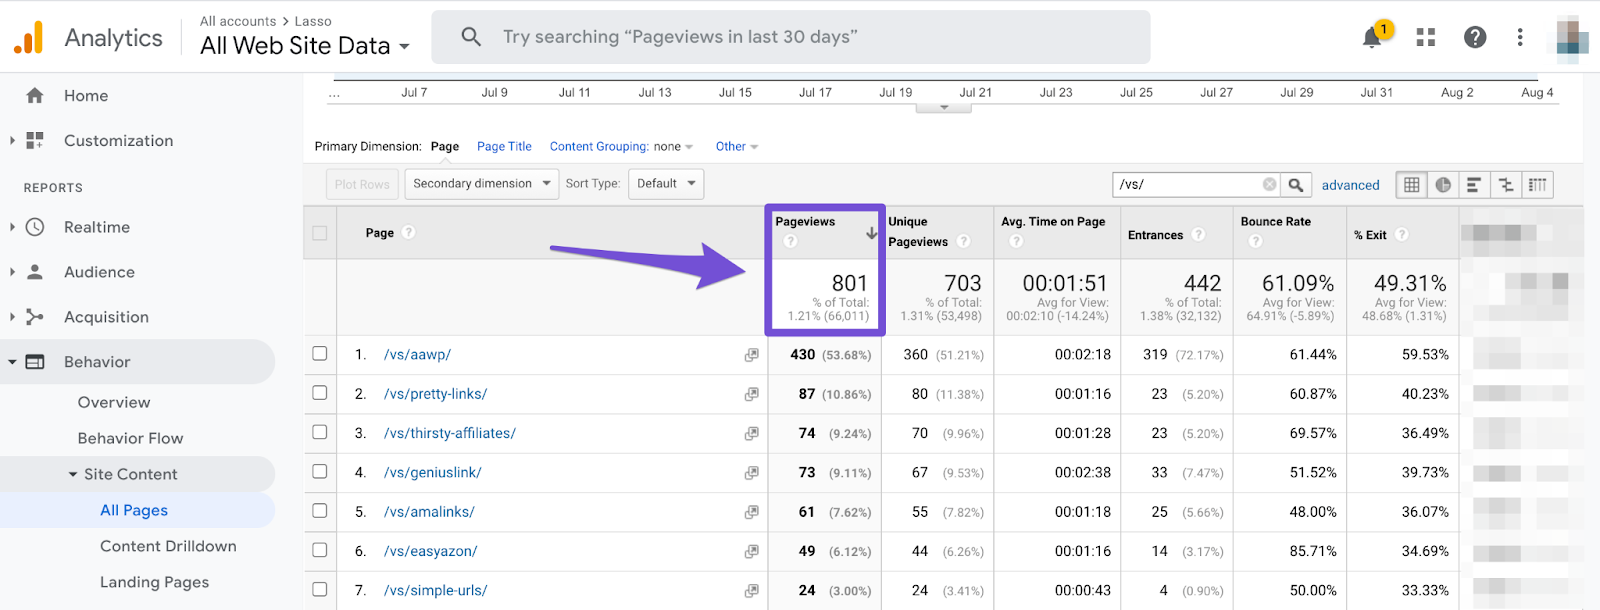 number of page views in 30 days from our product comparison competitor pages